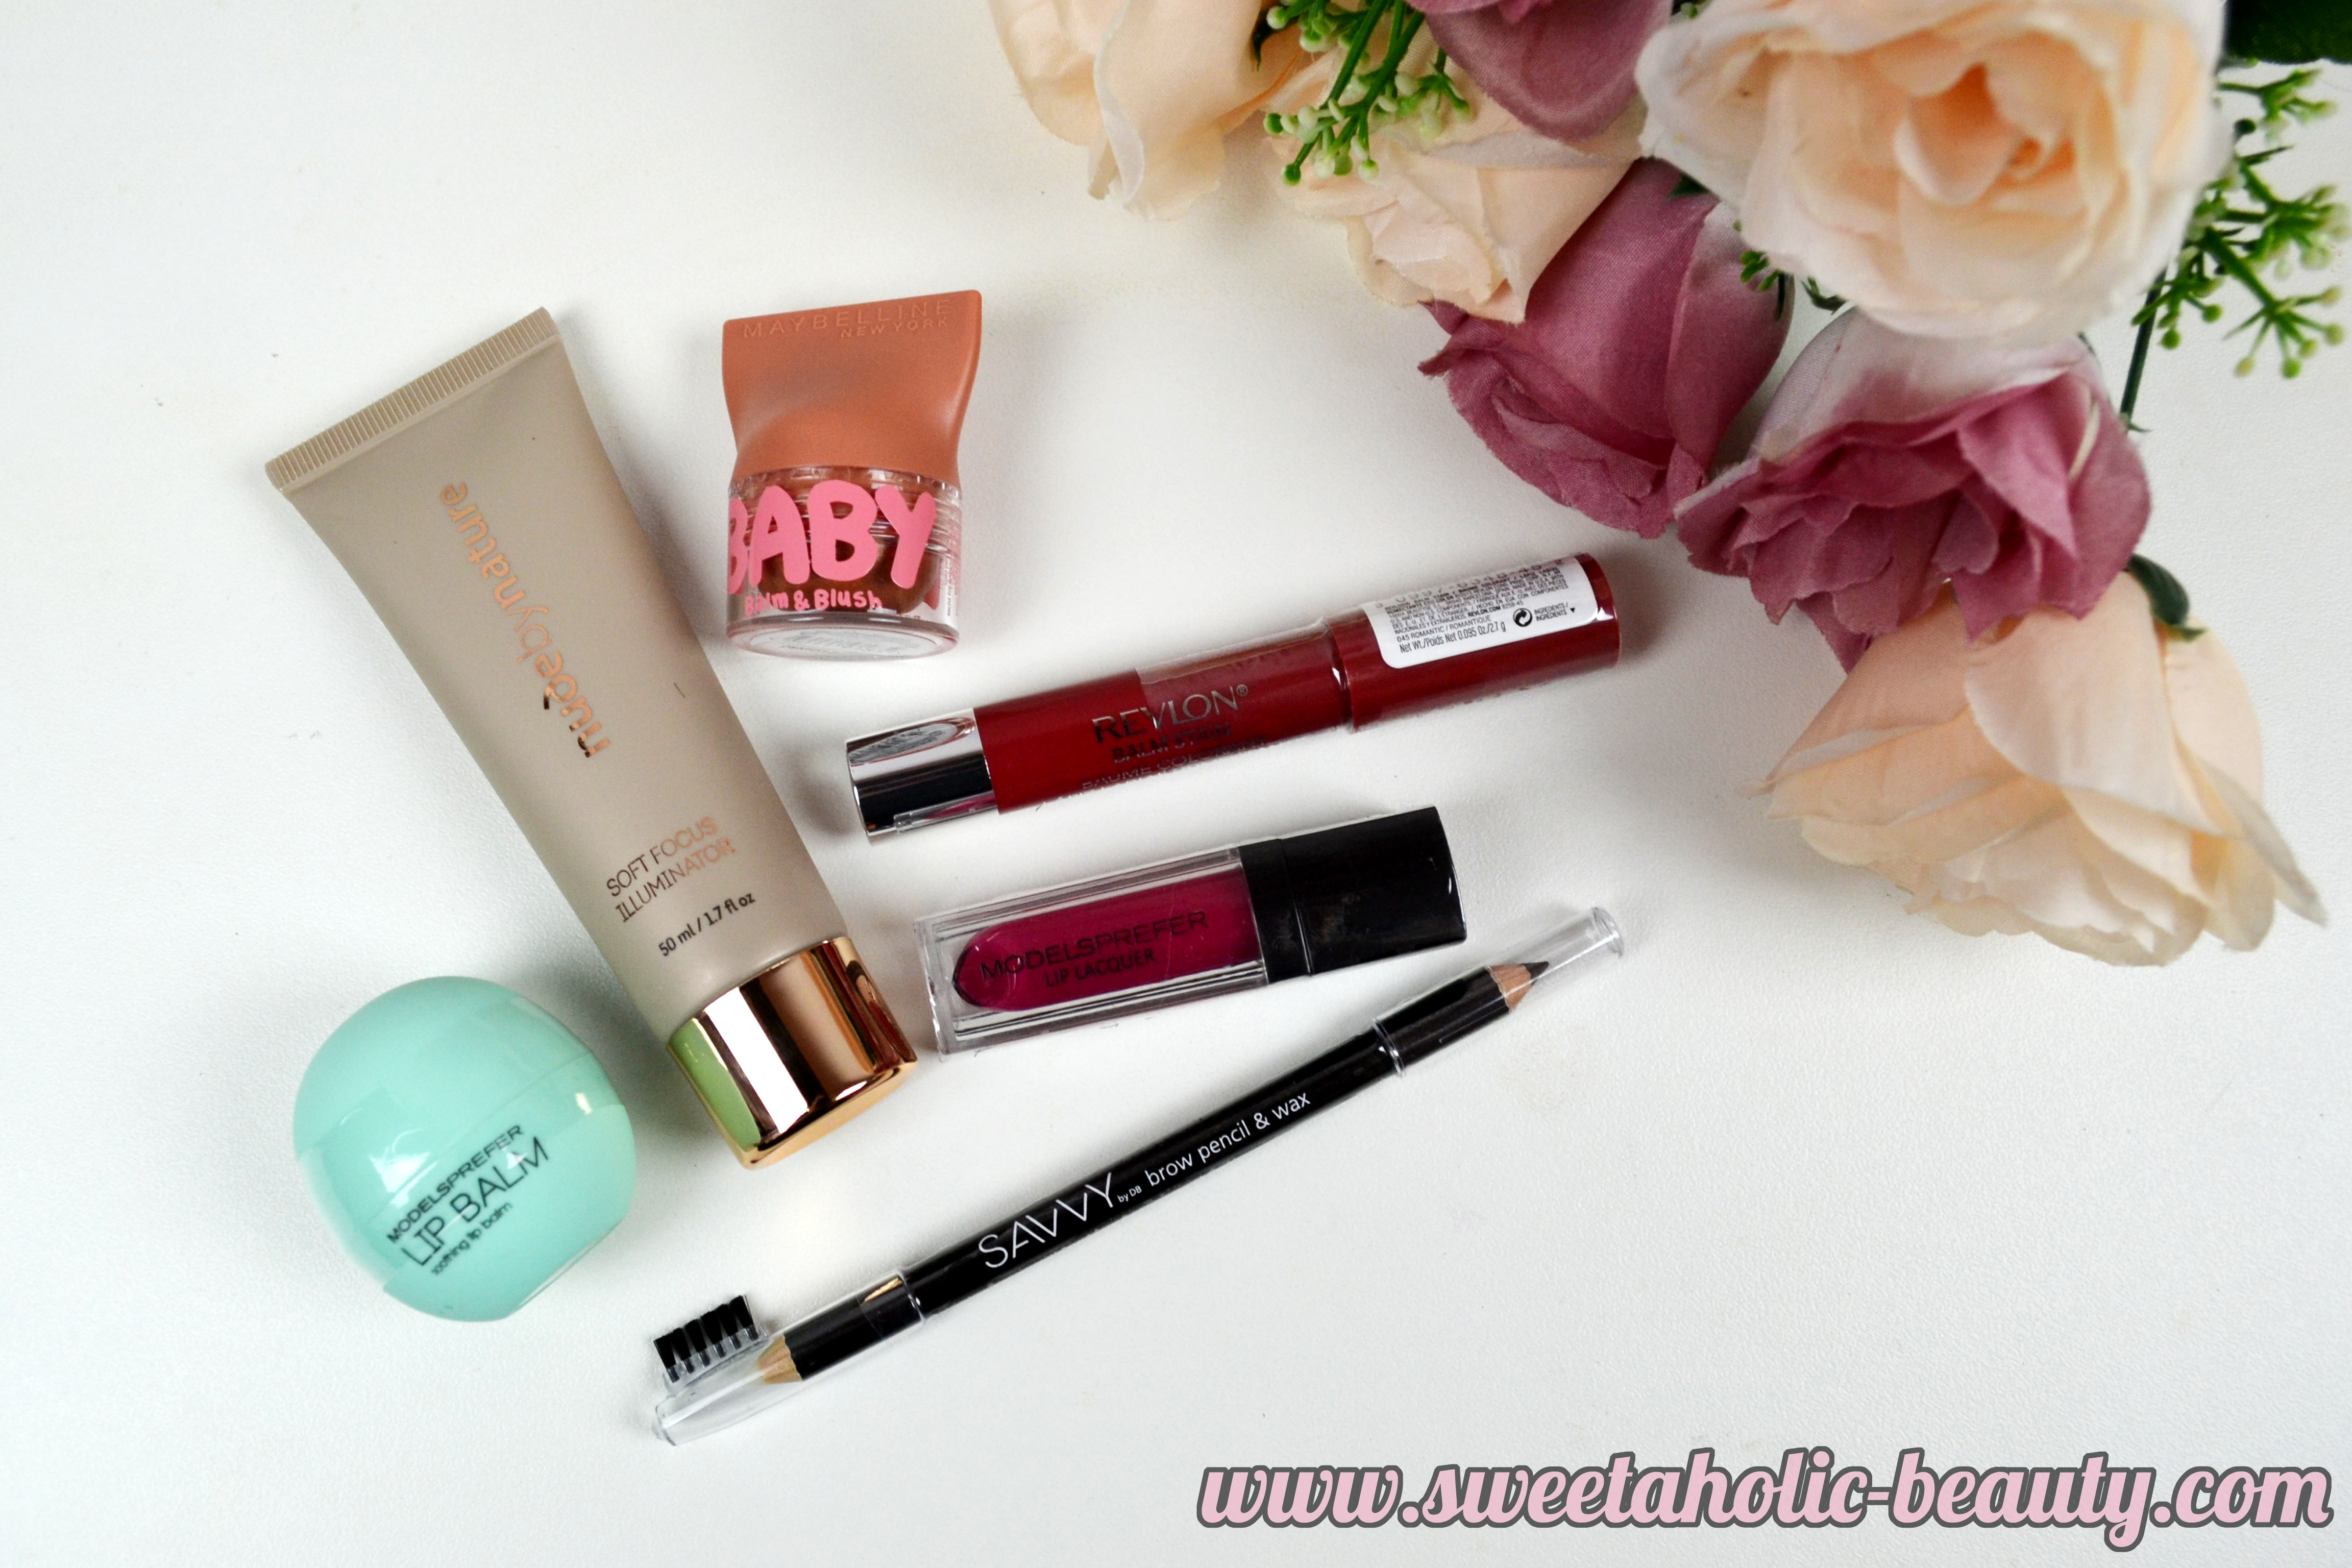 Priceline Your Cosmetic Gift Bag - Sweetaholic Beauty